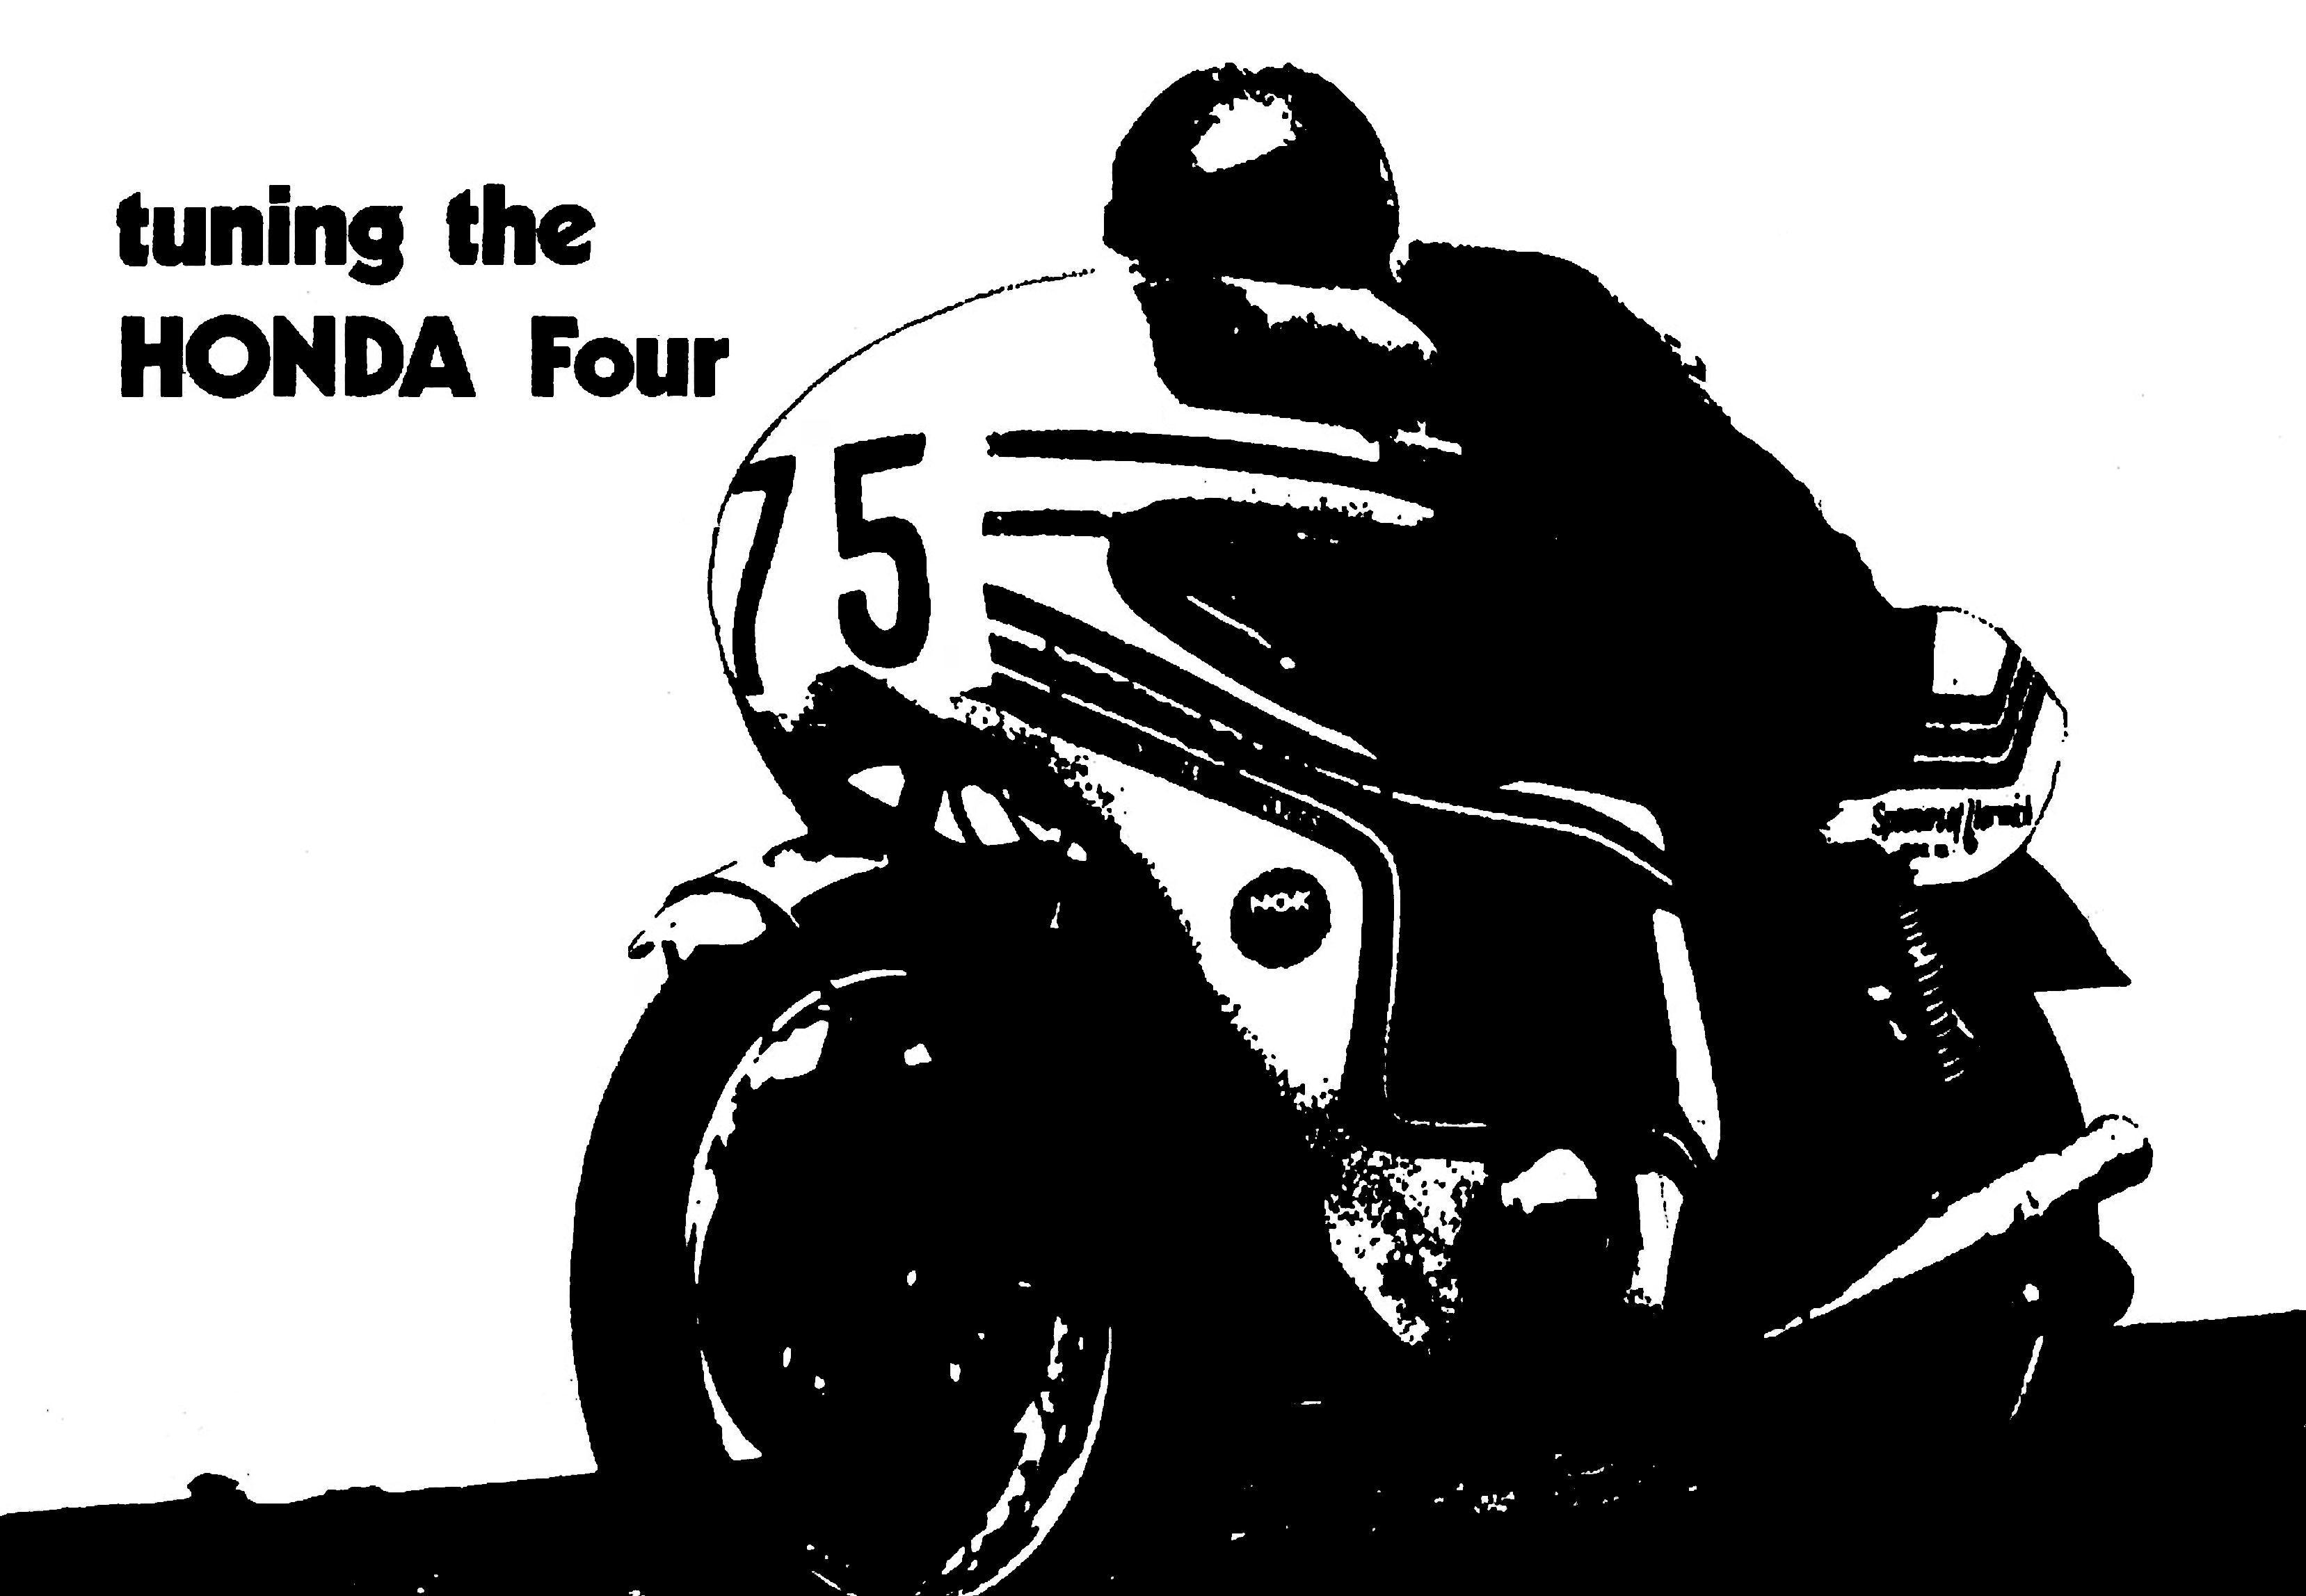 Honda Four Tuning Manual for Honda CB500F